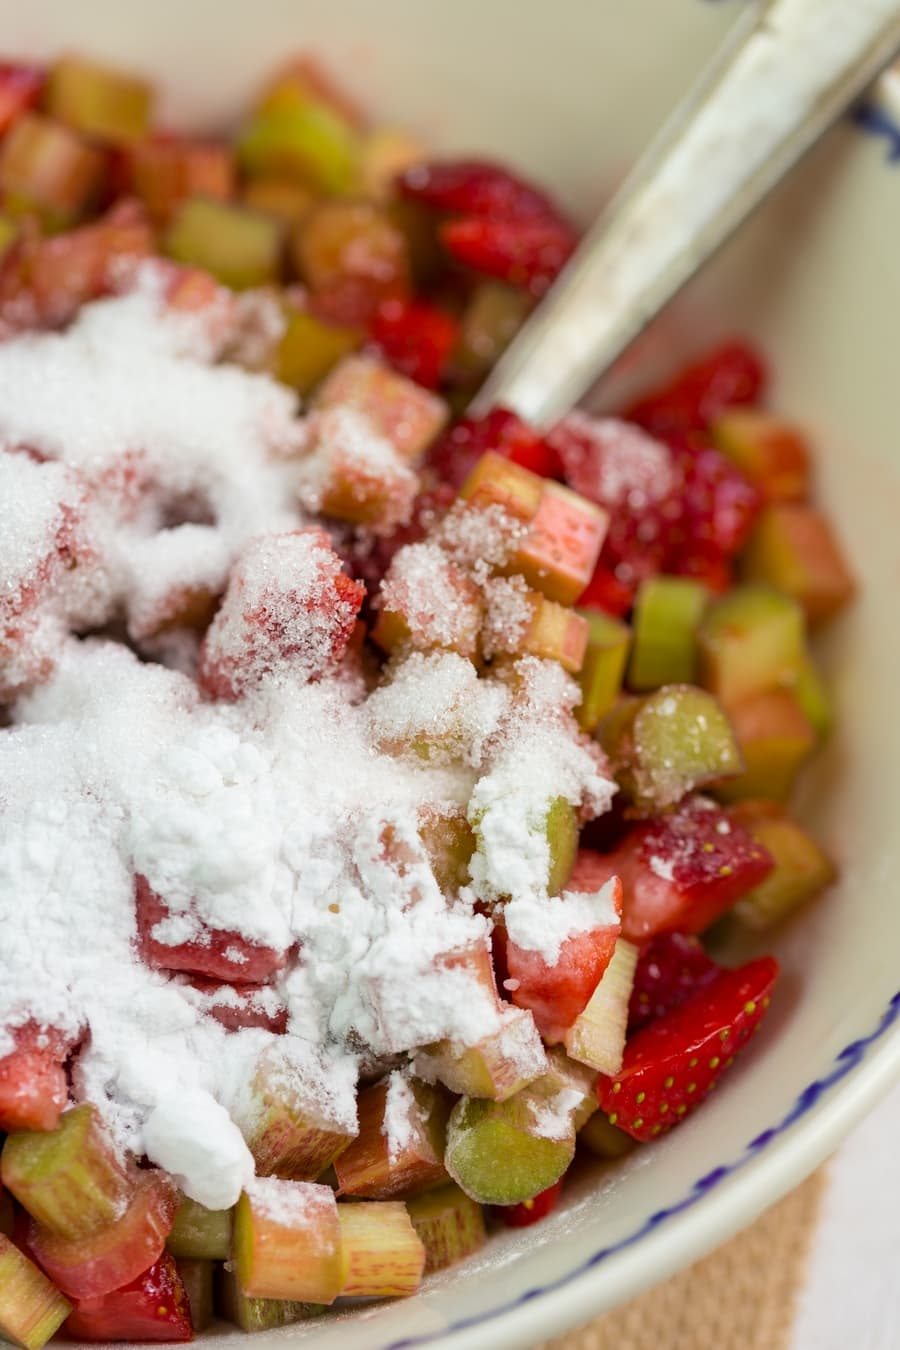 Strawberry rhubarb crisp base: sugar and starch added to diced fruits.